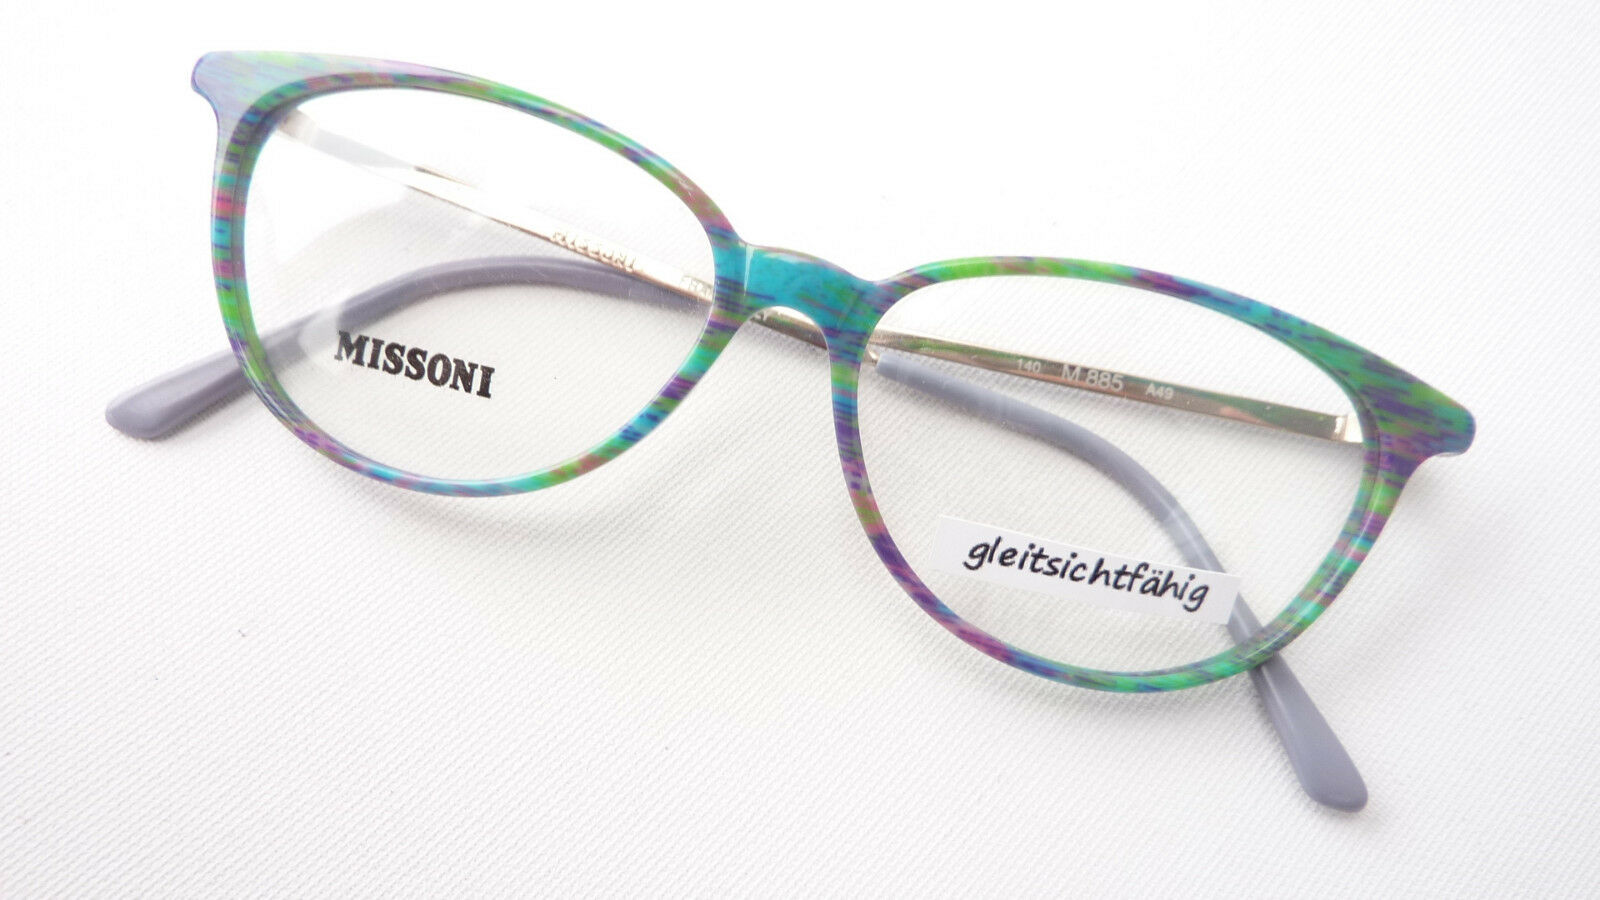 Missoni Designer Frames Glasses Ladies Butterfly Purple Green Turquoise Occhiali